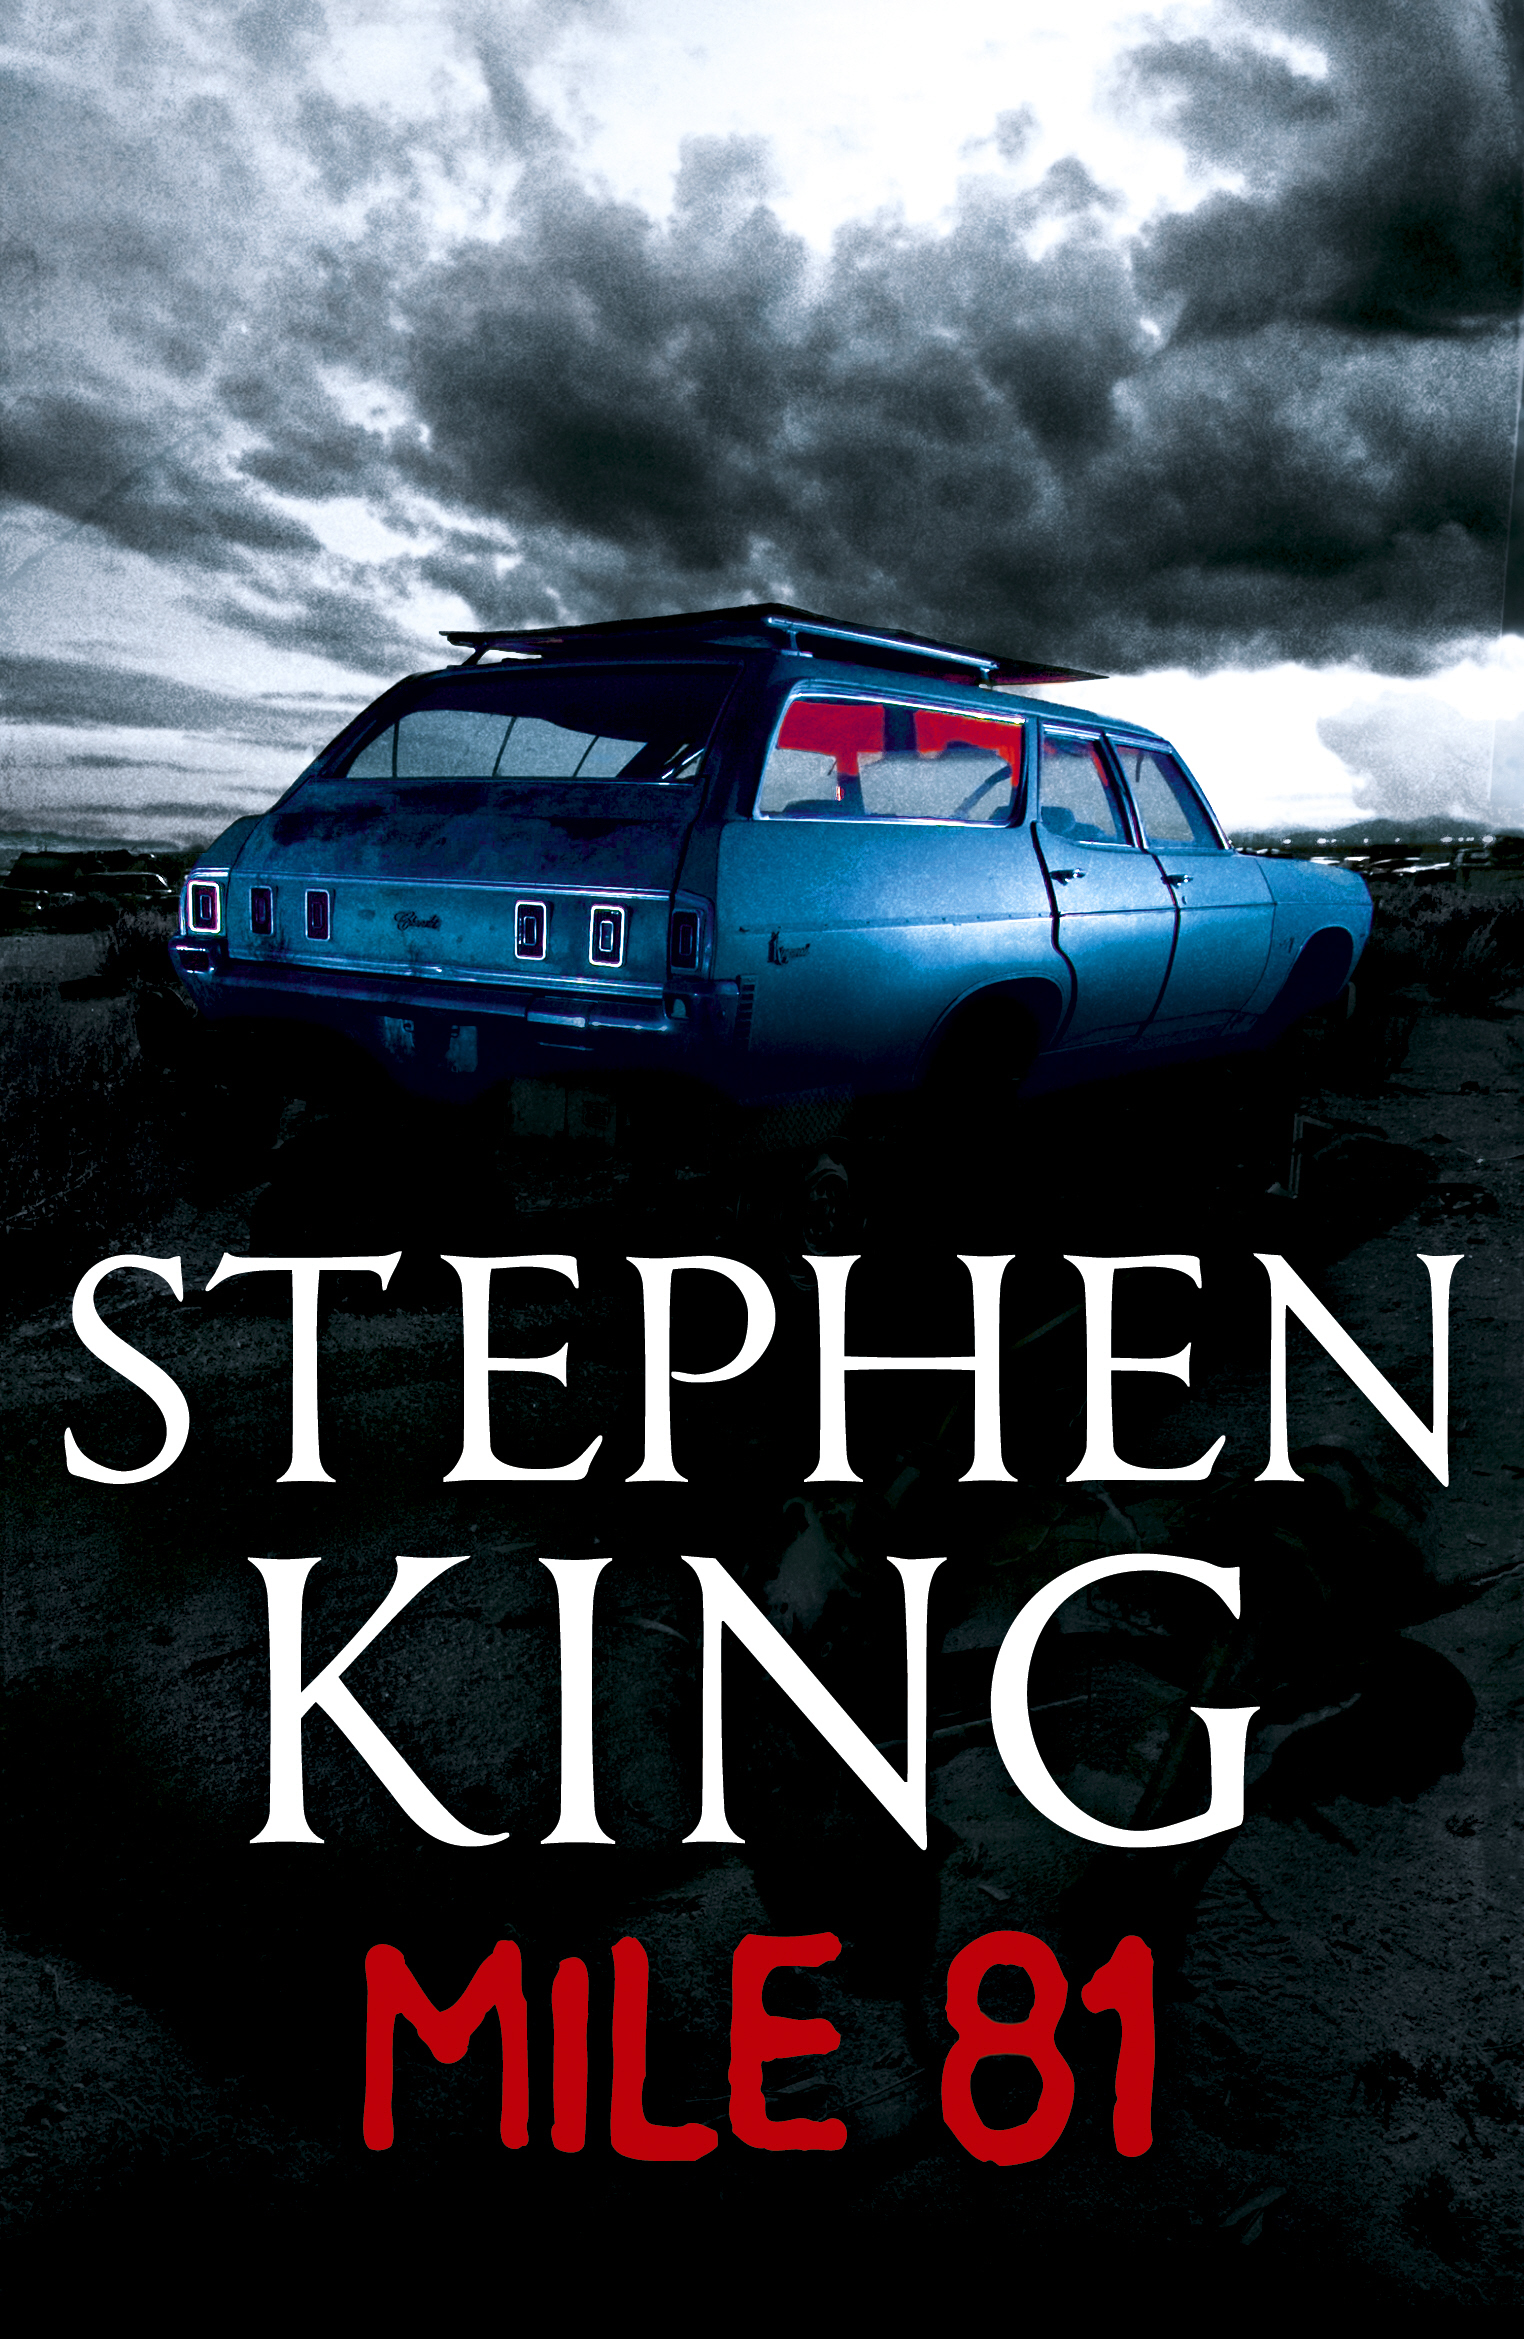 Stephen King Mile 81 Cover